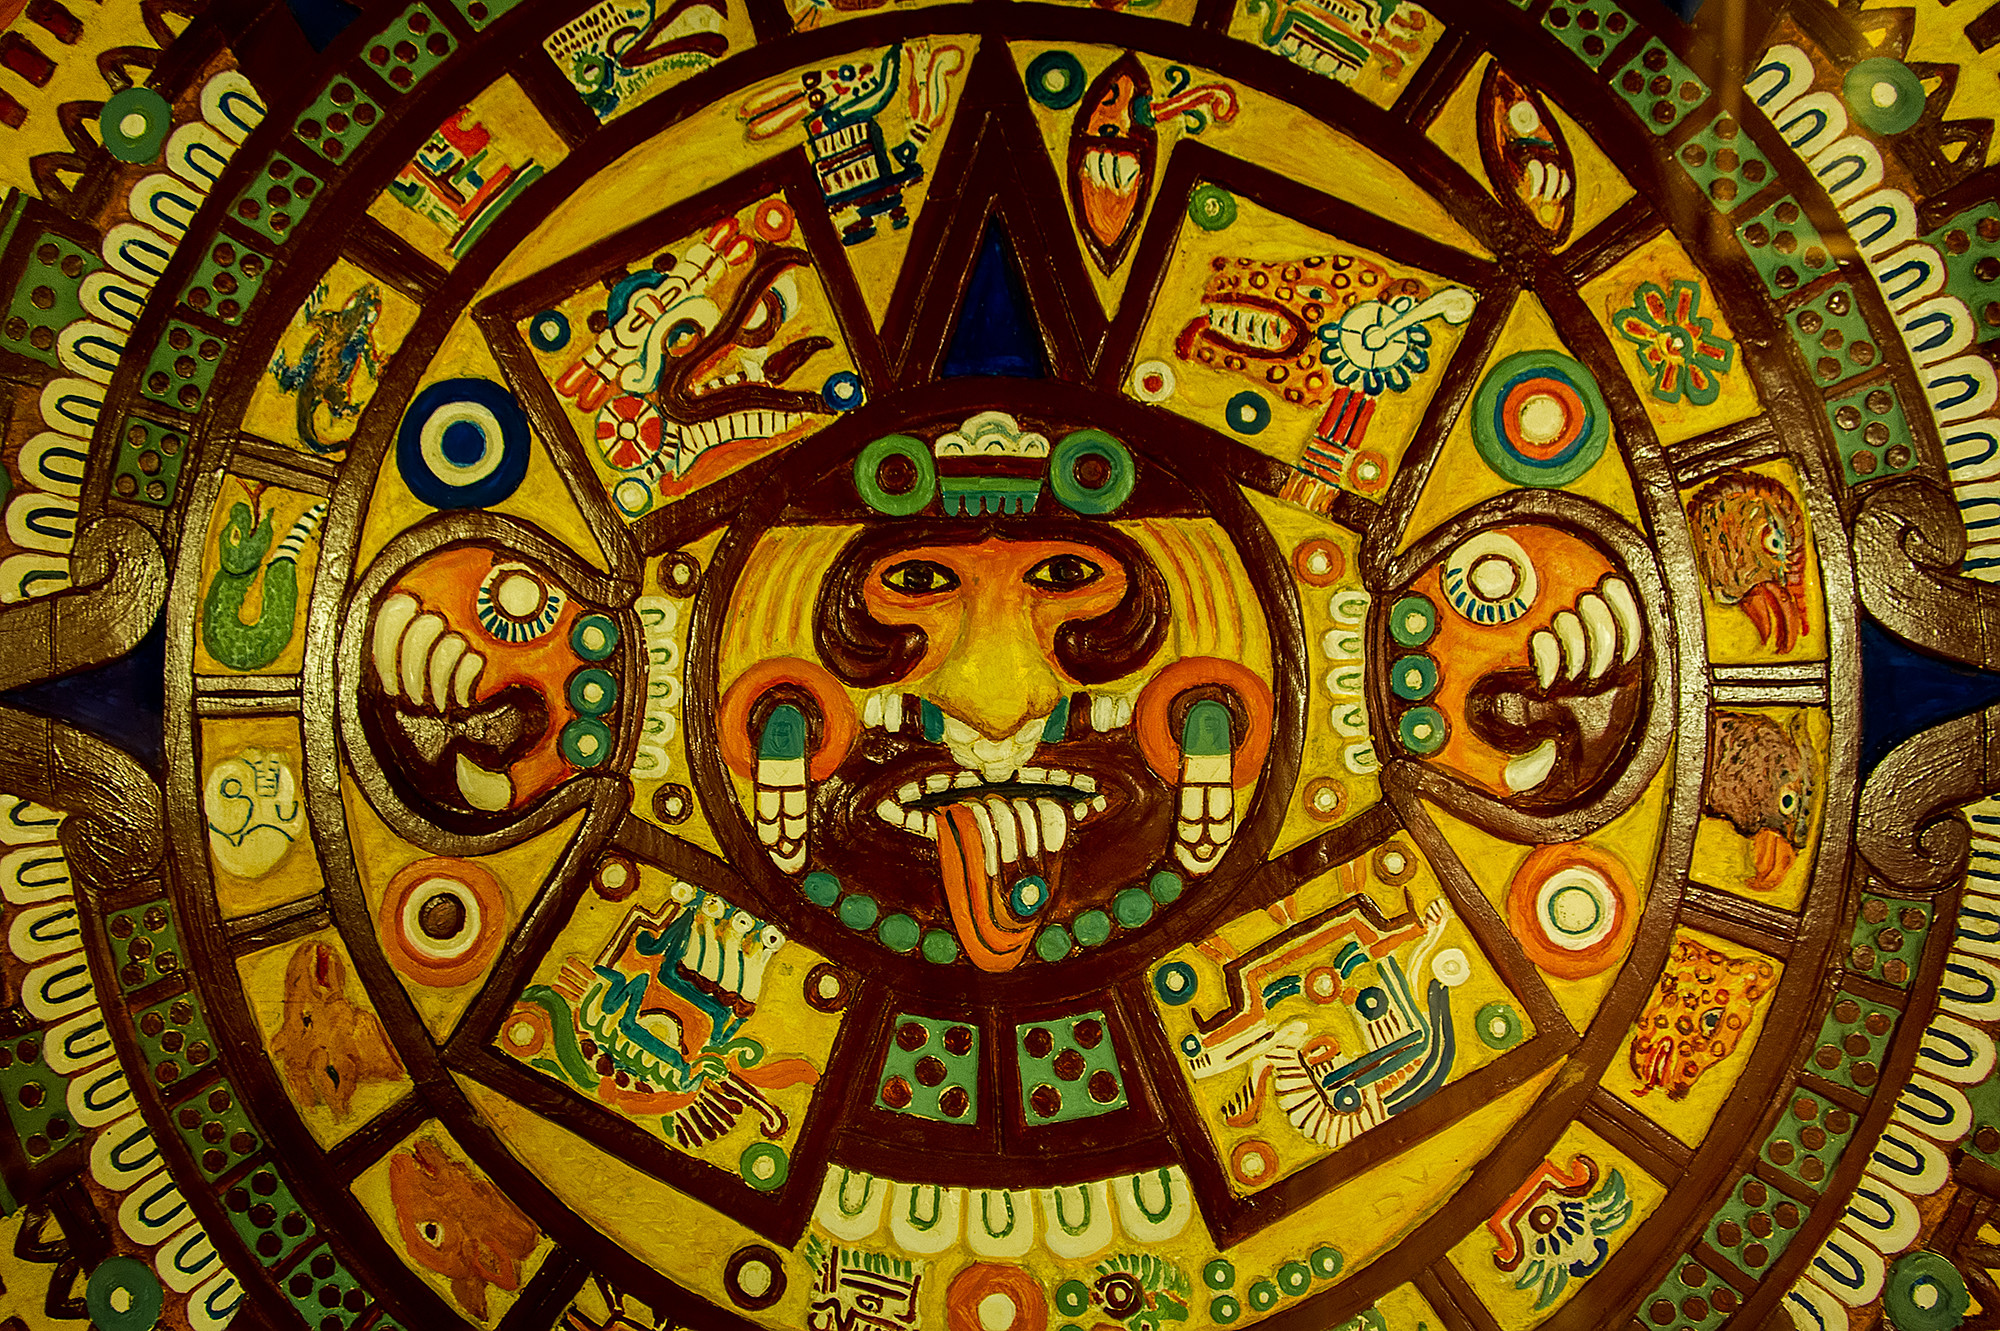 2000x1331 Mayan calendar | The Marke's World  http://www.themarkeworld.com/los-angeles/mayan-calendar/ mayan calendar |  Red Thread Magazine ...